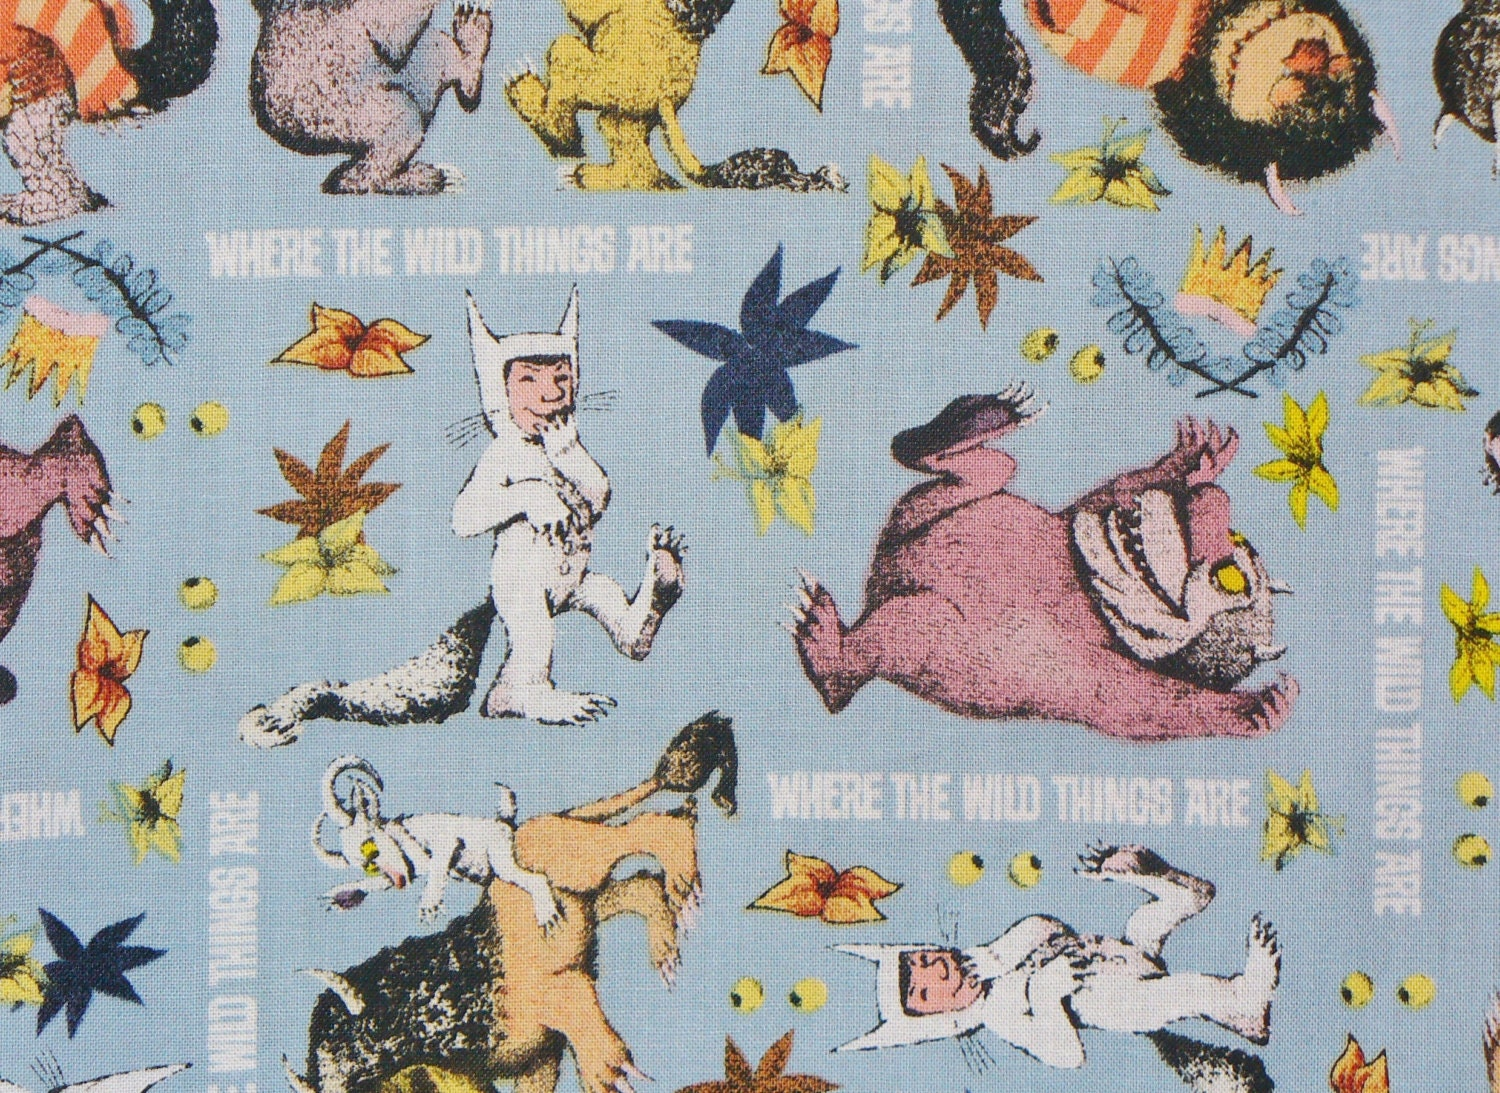 Where the wild things are childhood book max creatures Coloring book fabric by the yard